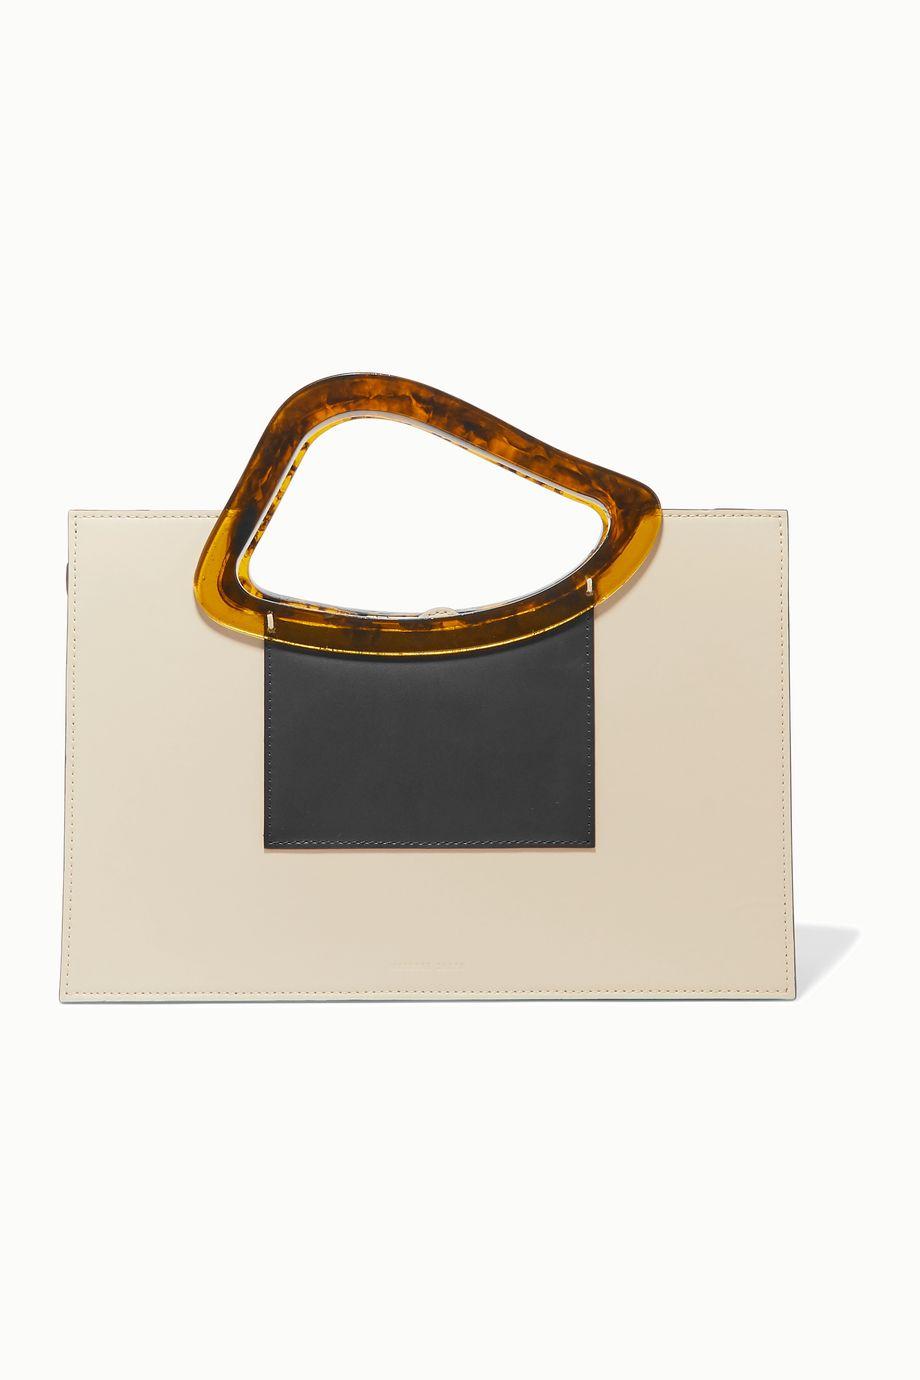 Naturae Sacra Arp Sailent leather and resin tote